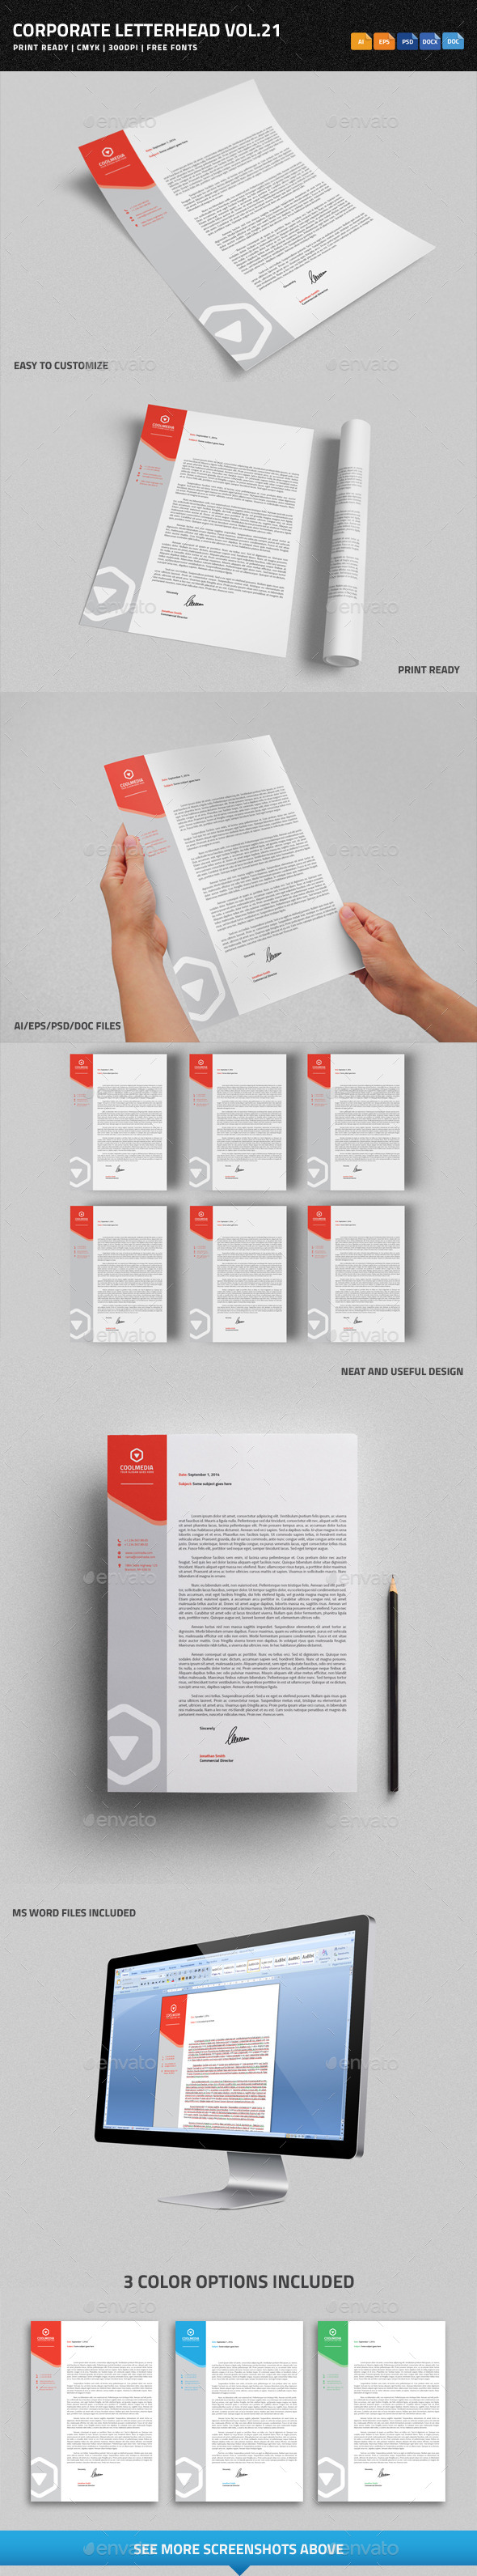 GraphicRiver Corporate Letterhead vol.21 with MS Word DOC DOCX 9137957